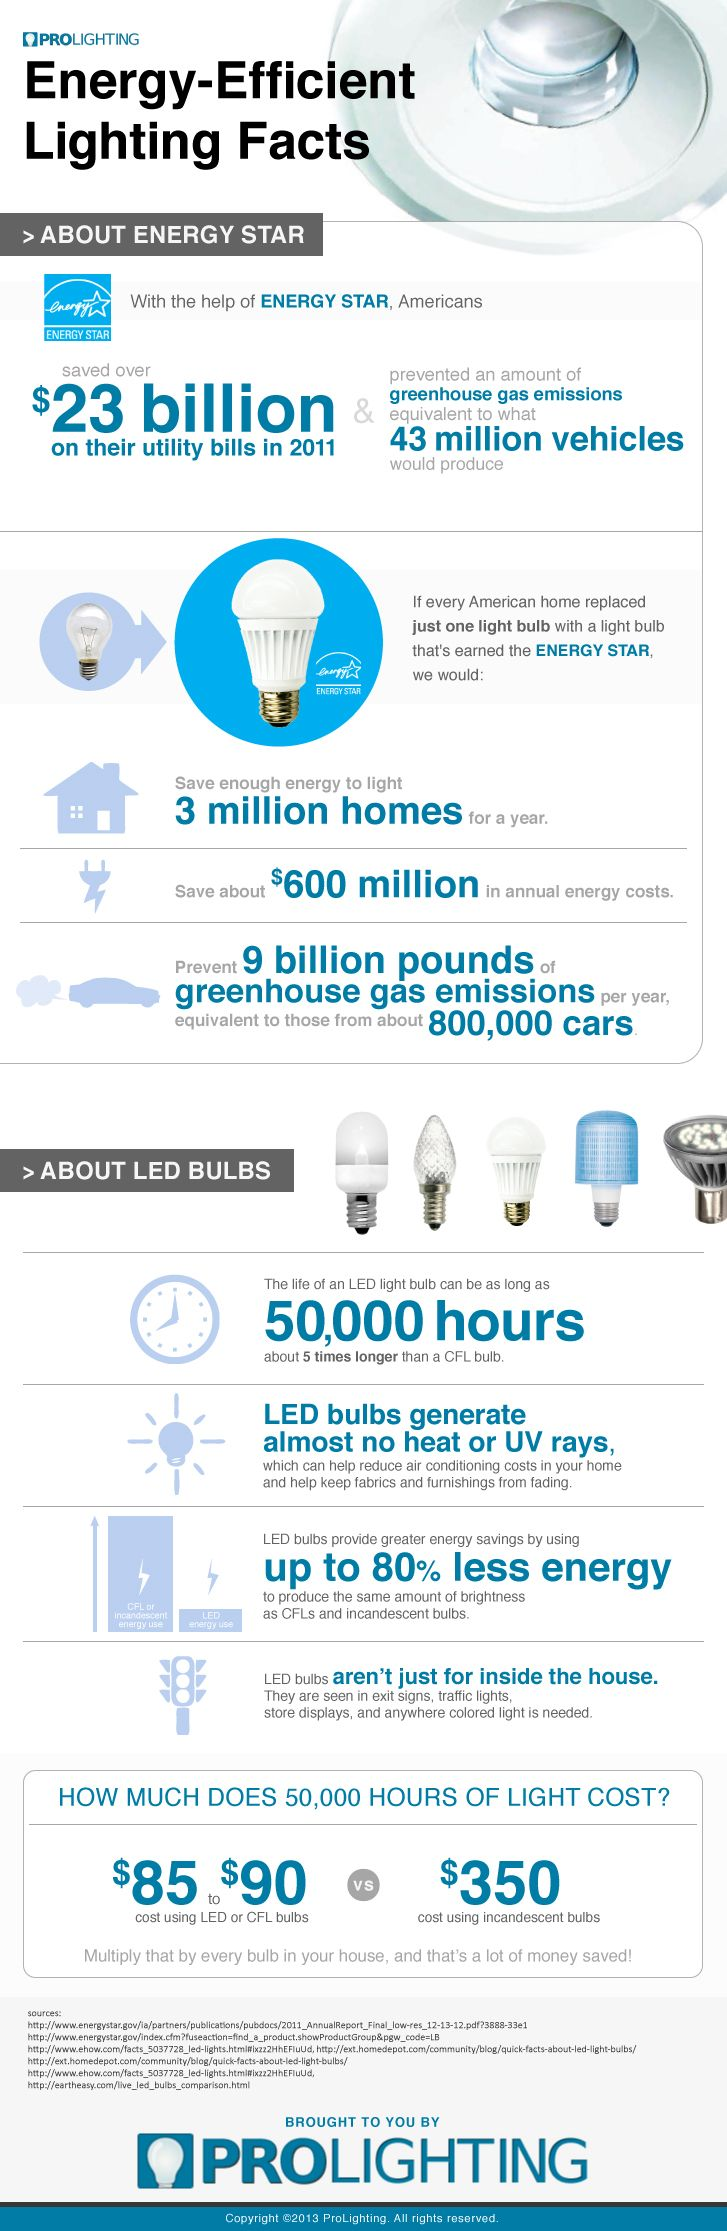 best images about energy efficient ideas 17 best images about energy efficient ideas electricity bill thermostats and energy consumption